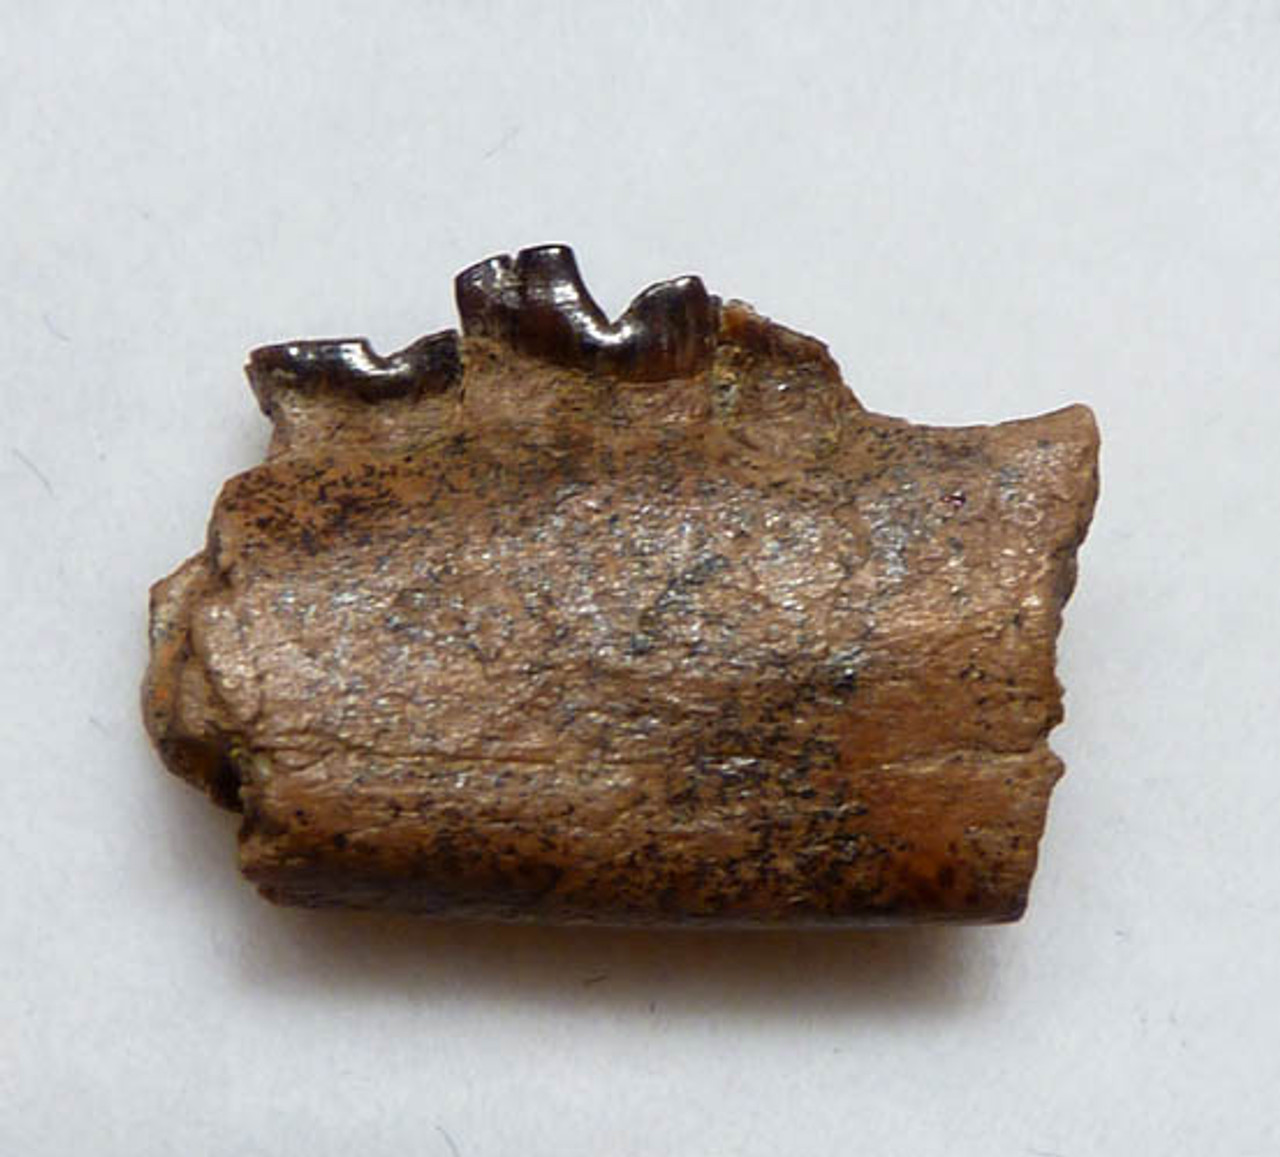 PARTIAL FOSSIL JAW FROM A METATHERIAN MAMMAL DIDELPHODON OFTHE DINOSAUR DAYS  *MM015